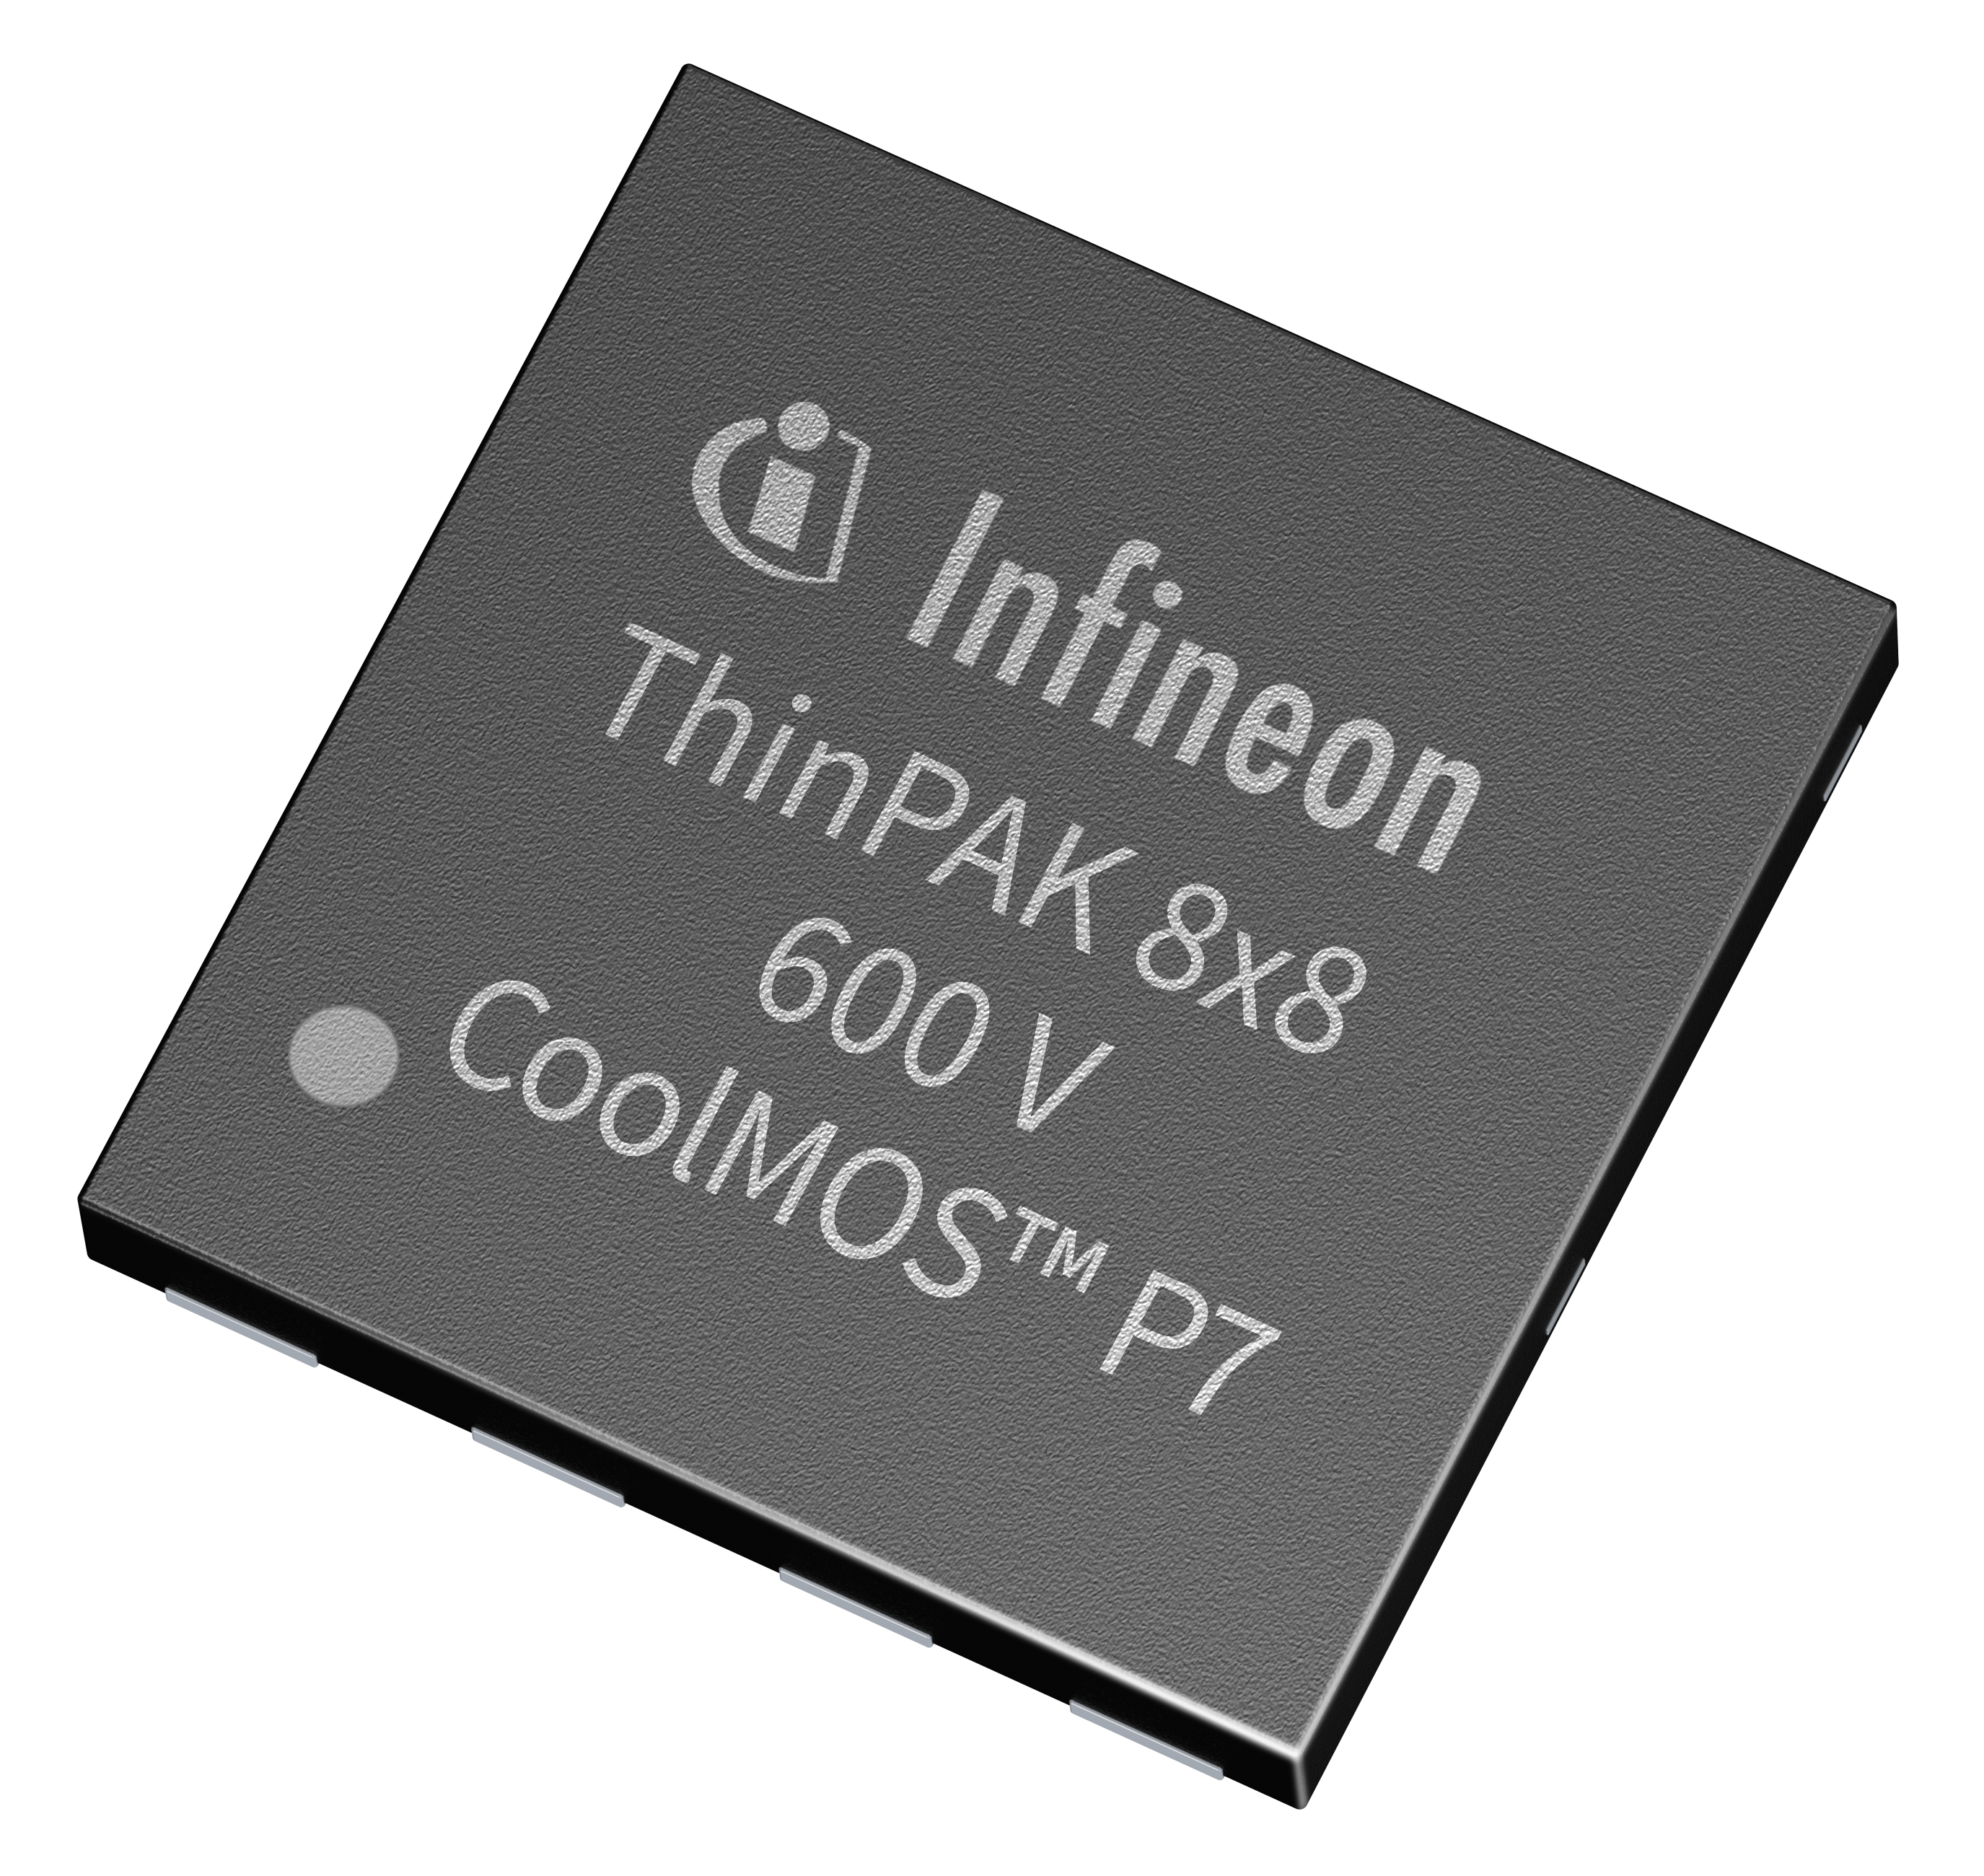 Ice5qr1680ag Infineon Technologies 60w Inverter Using Transistors Ipl60r285p7 600v Coolmos N Channel Power Mosfet